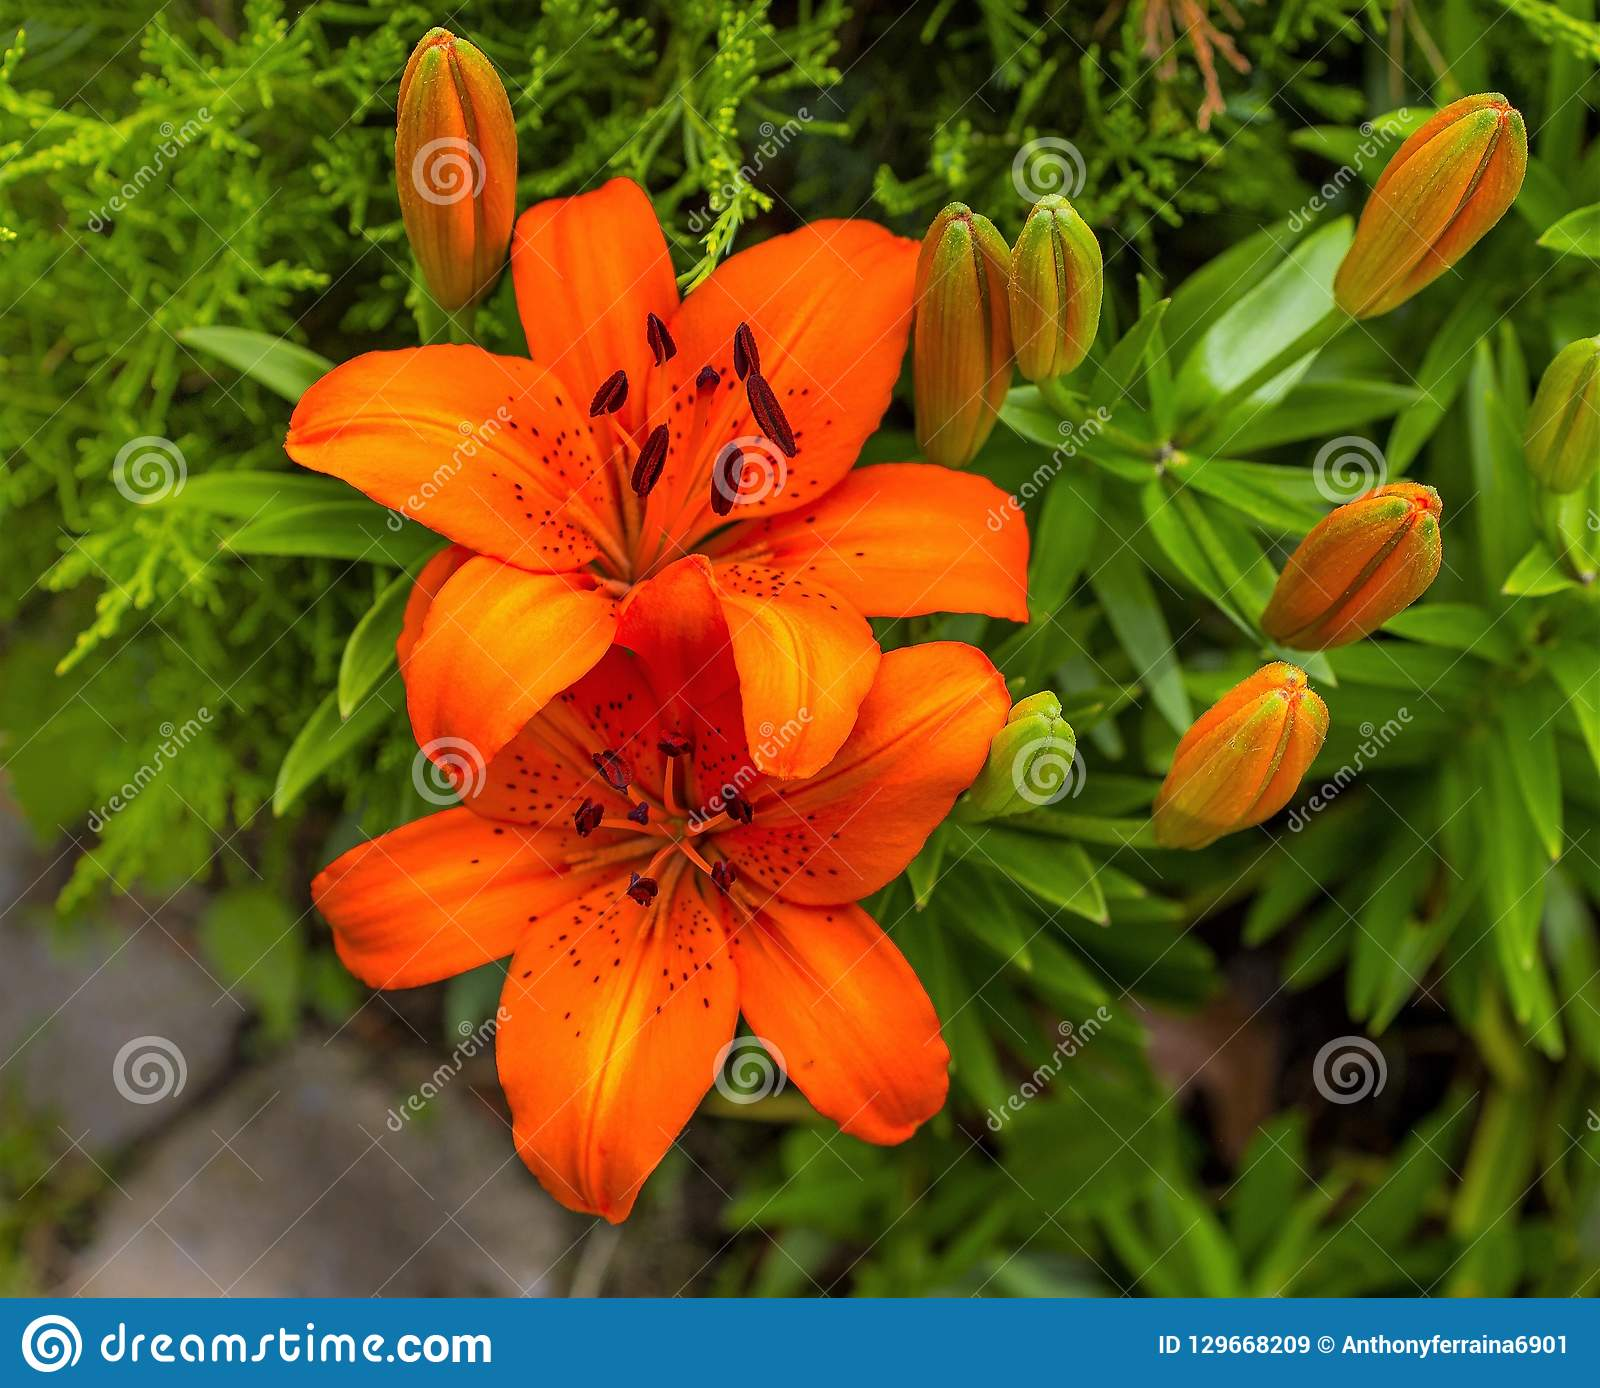 d698ae42cc8c8 Beautiful, Orange Lilly in full bloom in mid summer. The lily is a very  popular flower in South Jersey, it has bright vivid color and the buds are  large ...